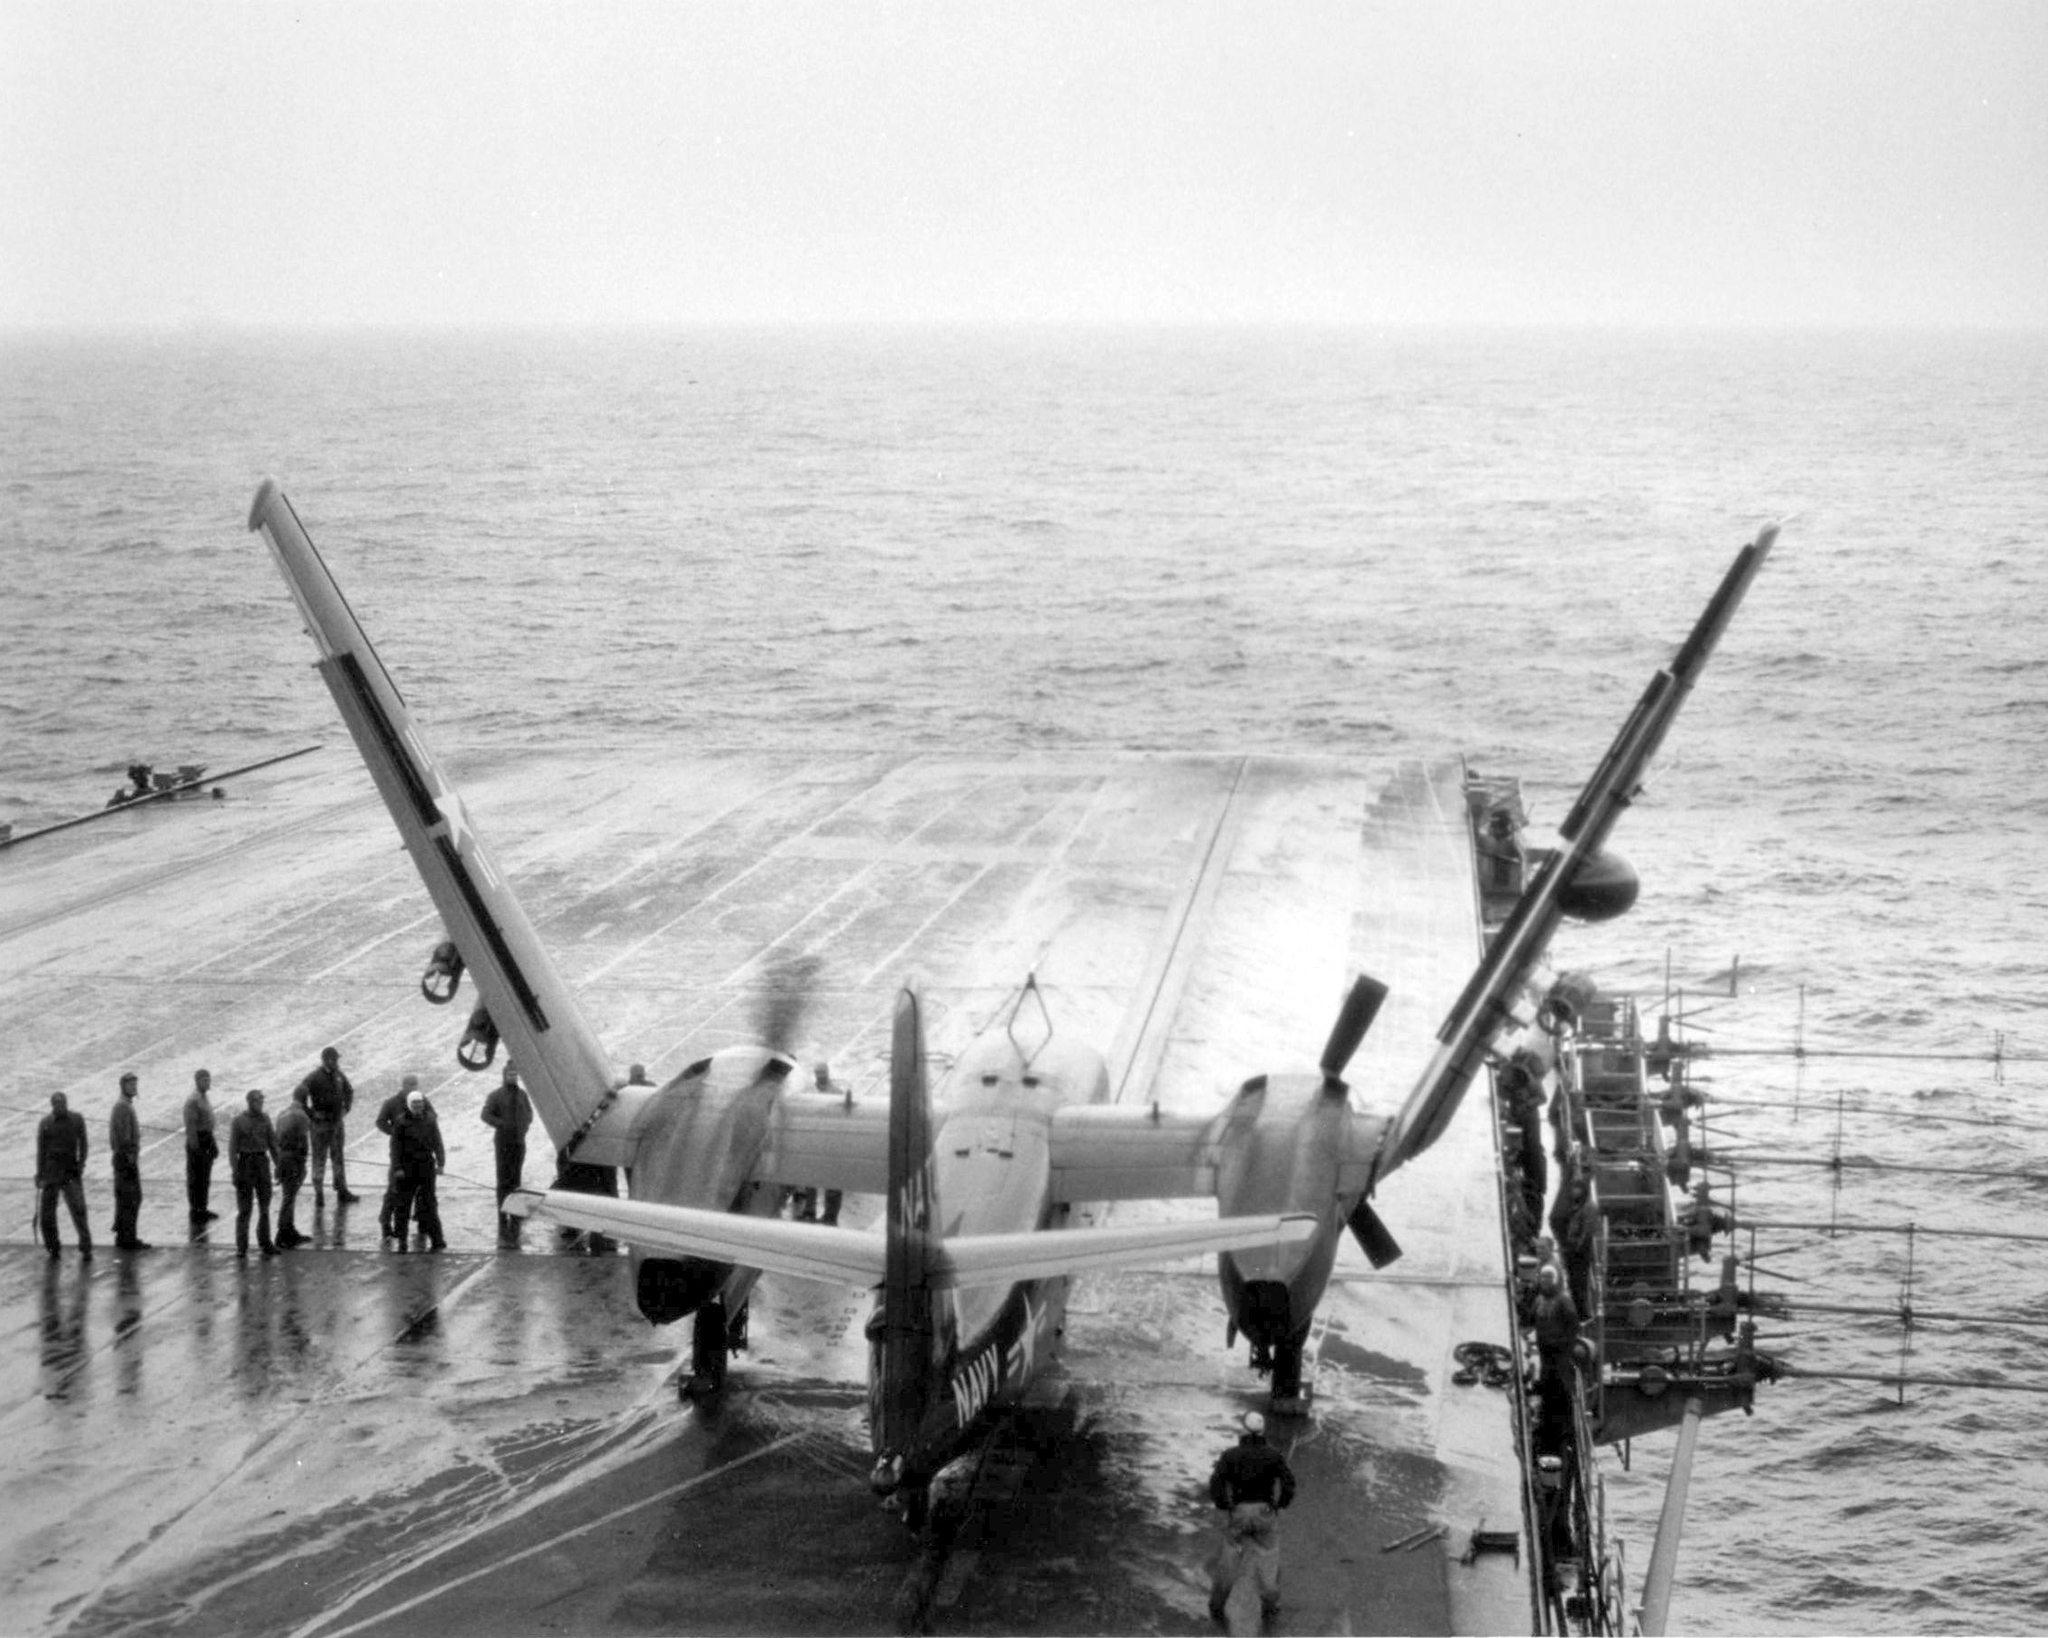 'Hi Resolution Photo Click Here' from the web at 'http://www.usscoralsea.net/images/cvb431952S2FTracker.jpg'